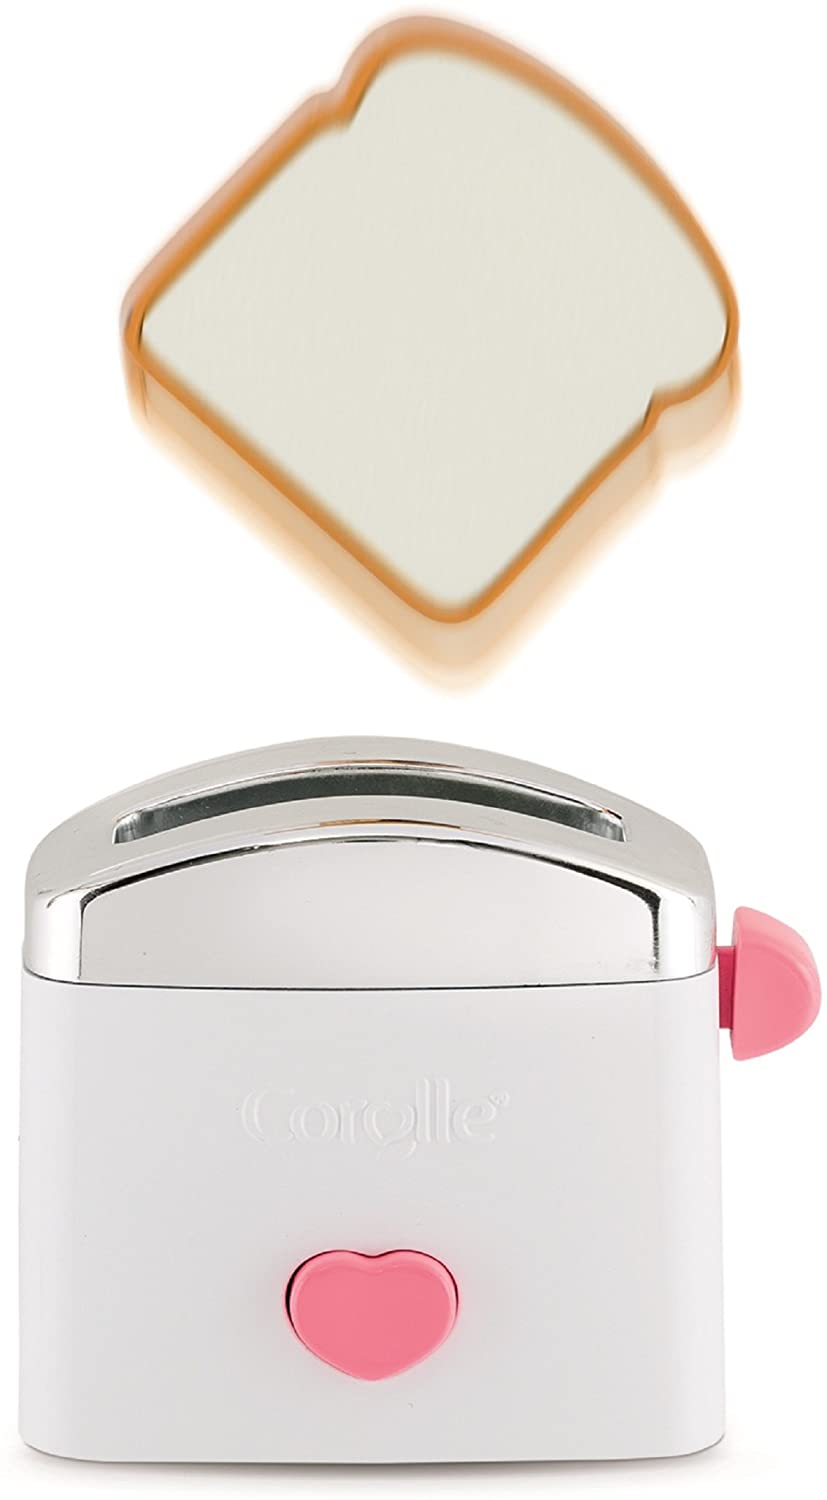 Corolle Mon Grand Poupon Toaster & Toast Set Toy Baby Doll